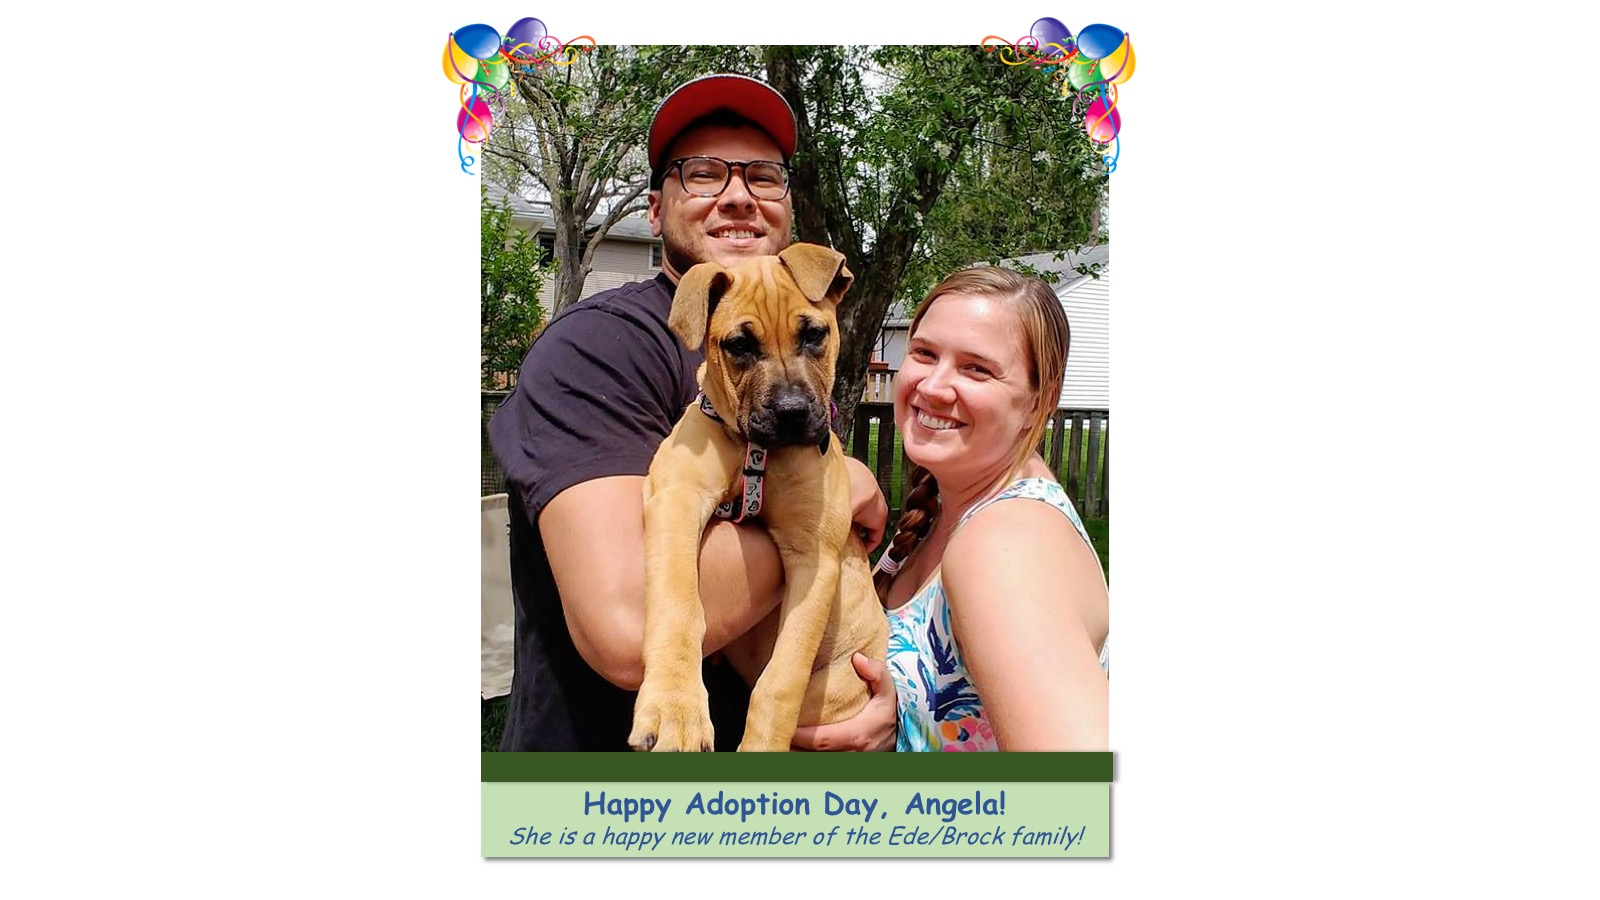 Angela_Adoption_Photo_2018.jpg